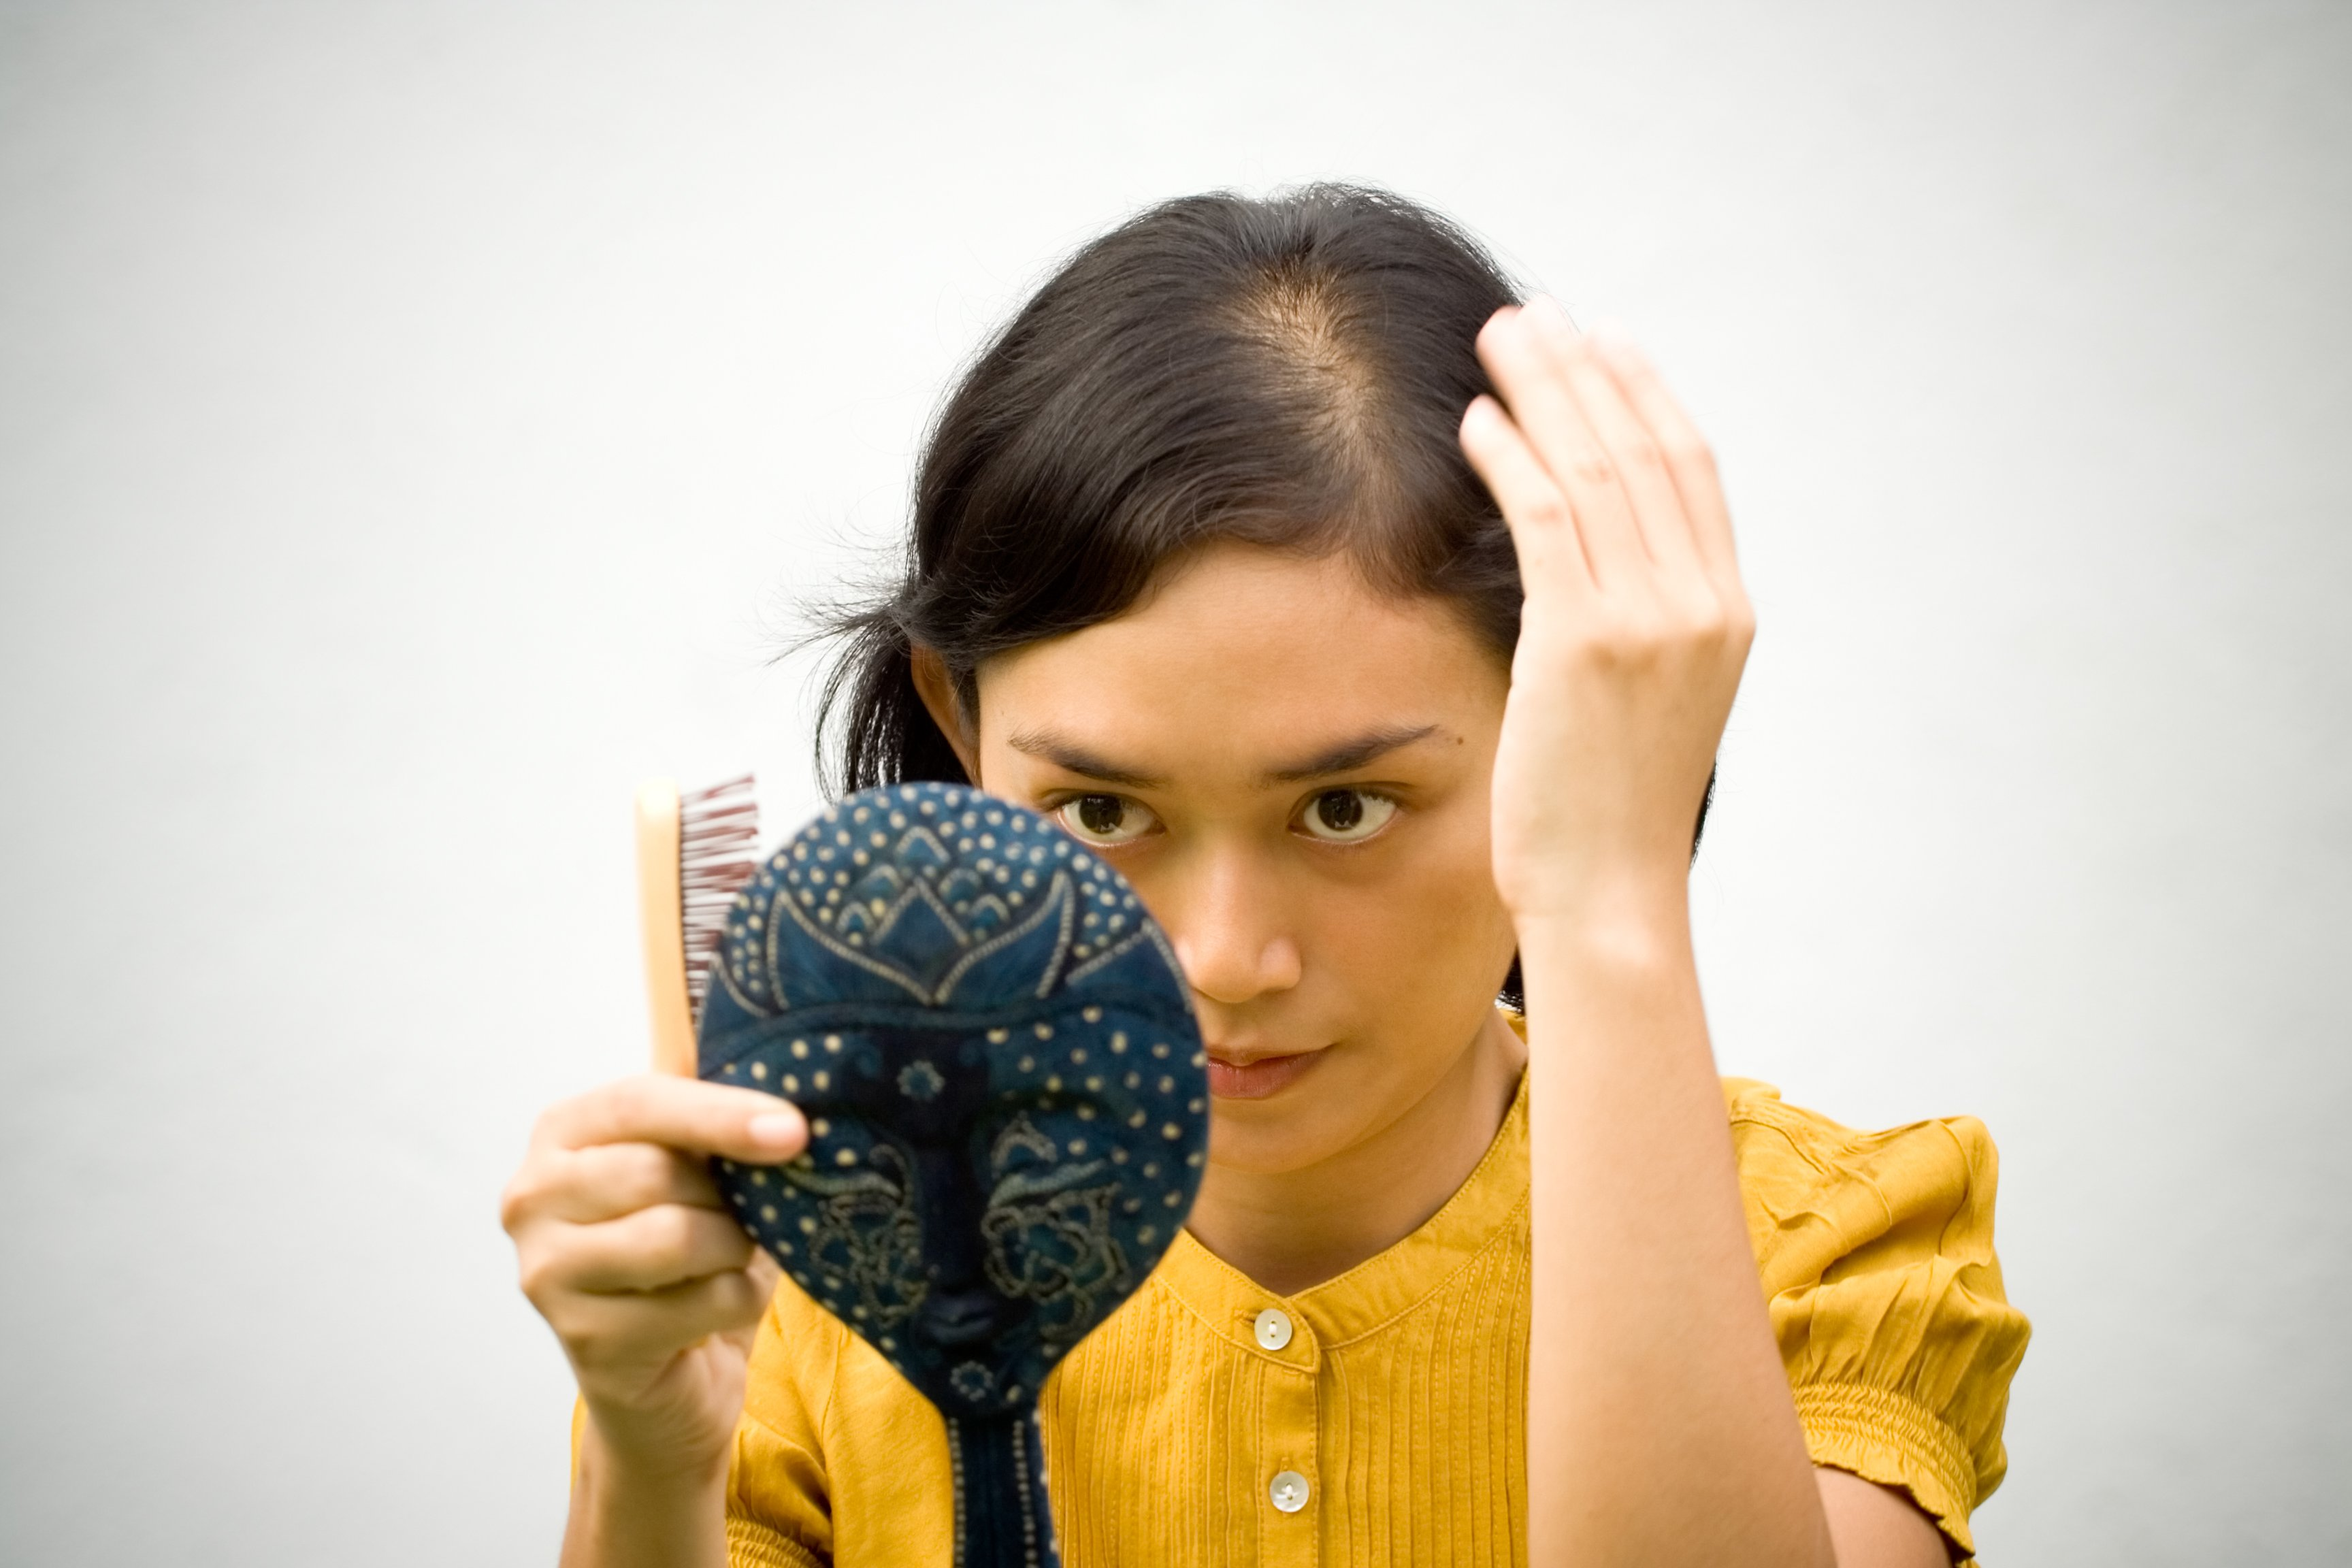 woman with hair loss along her part